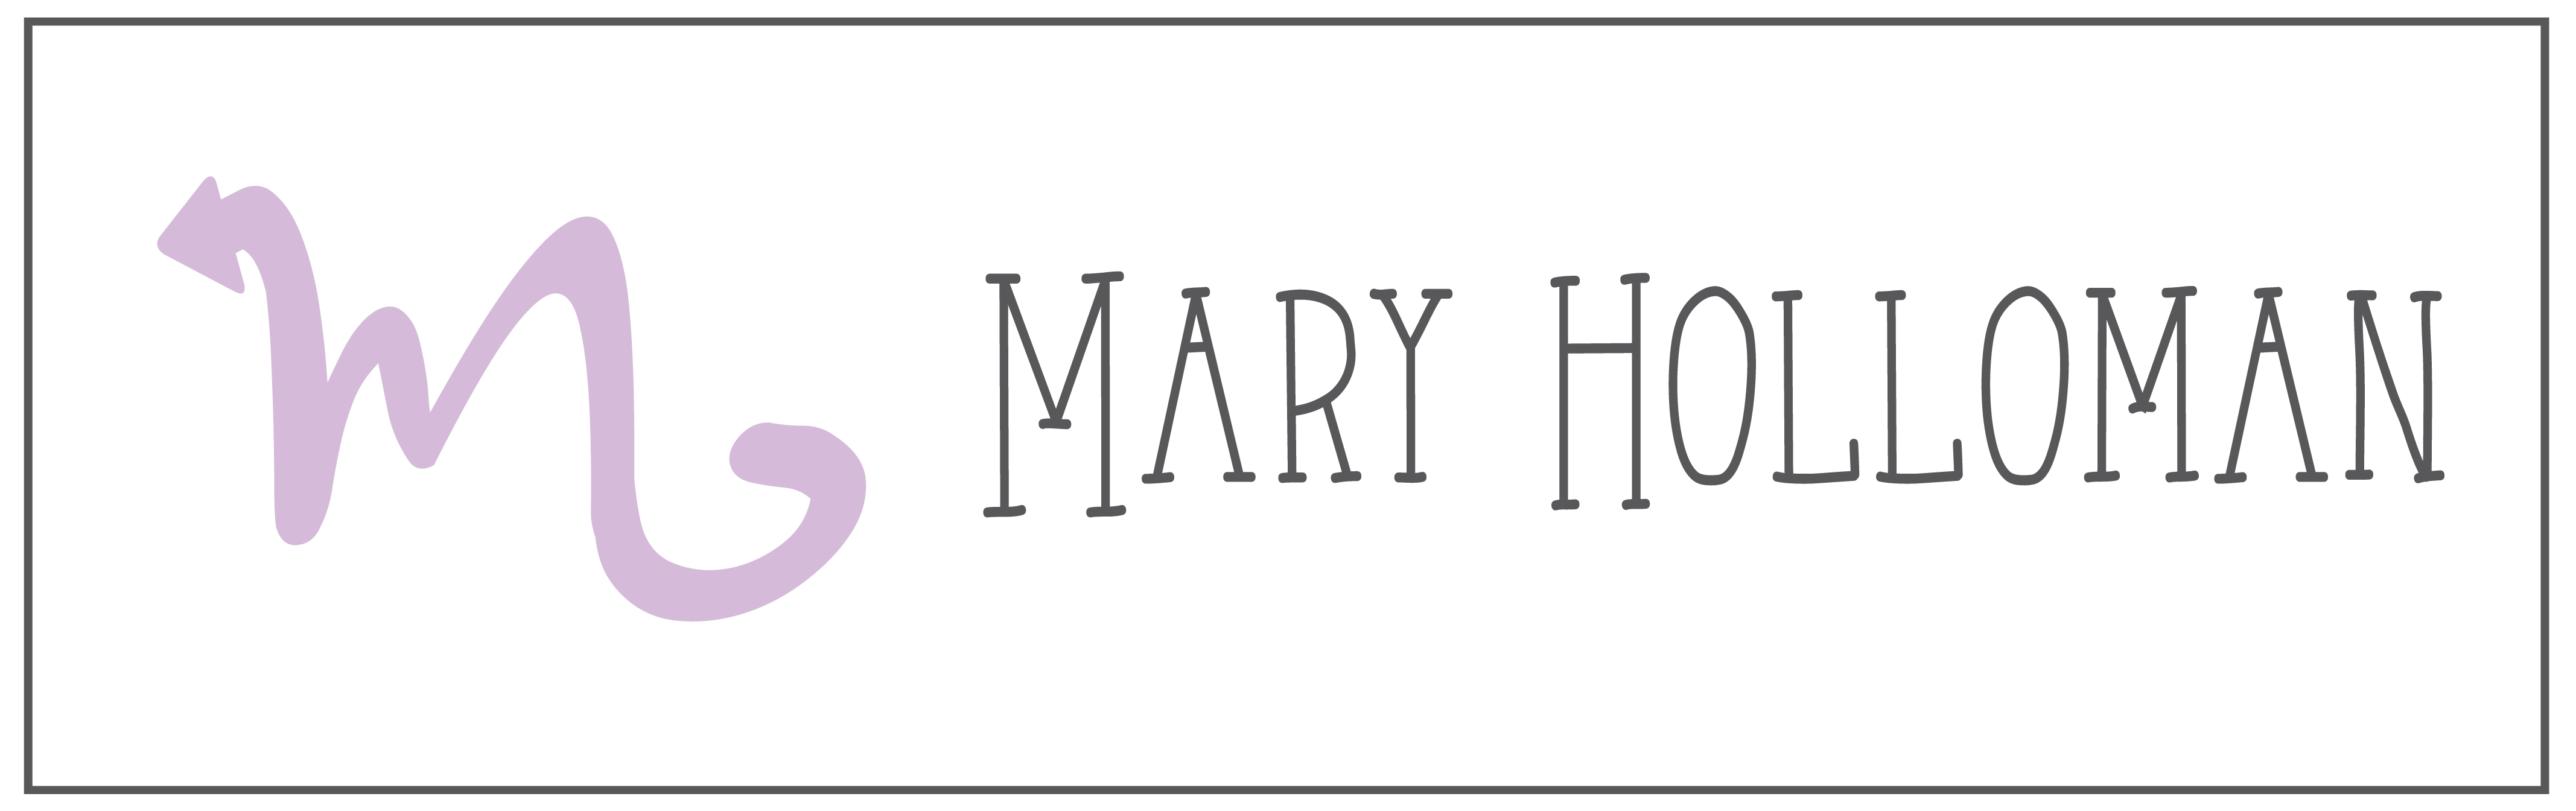 mary_holloman_letter_arrow